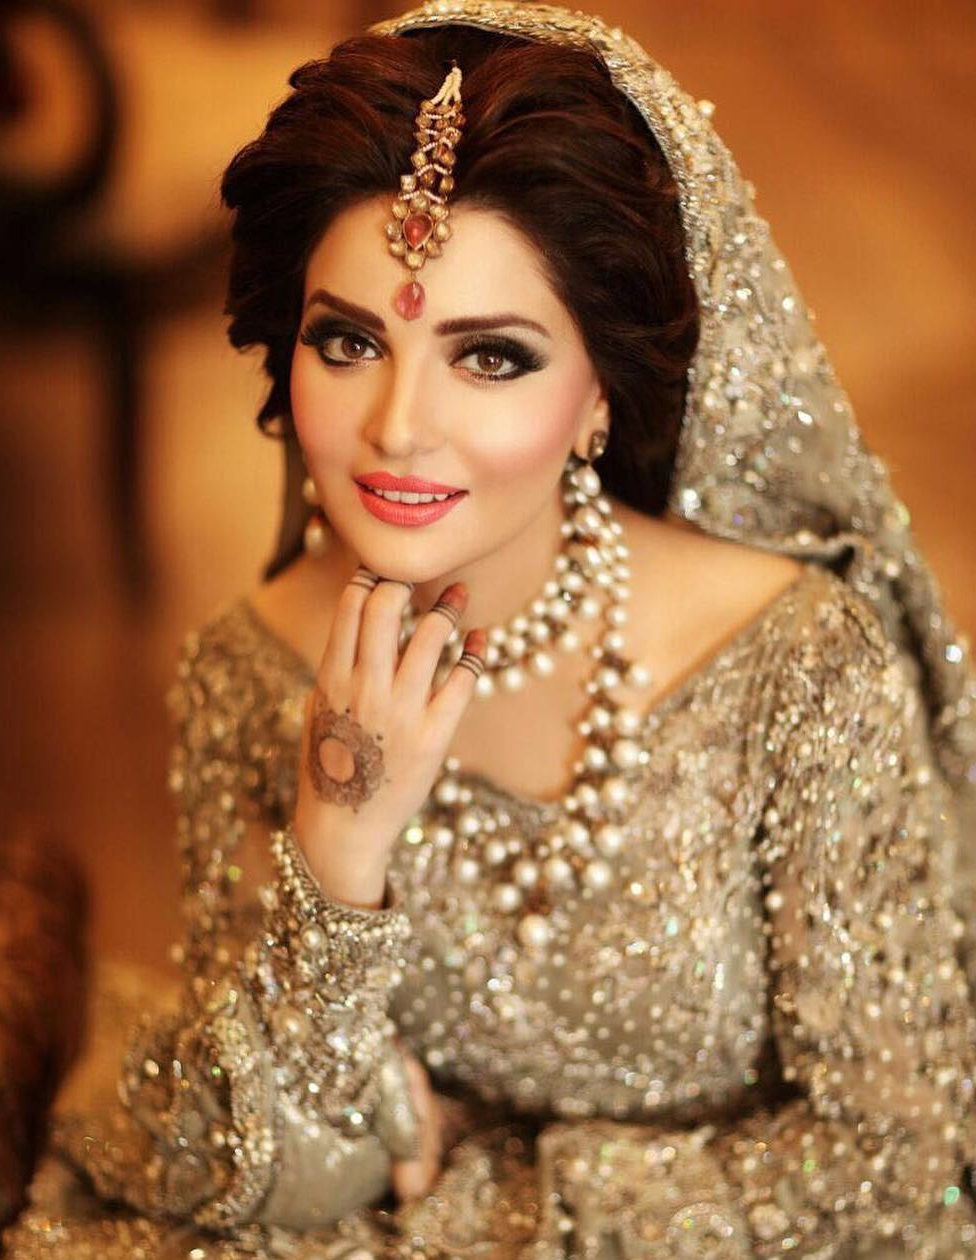 Armeena Rana Khan wearing pretty Bridal jewels